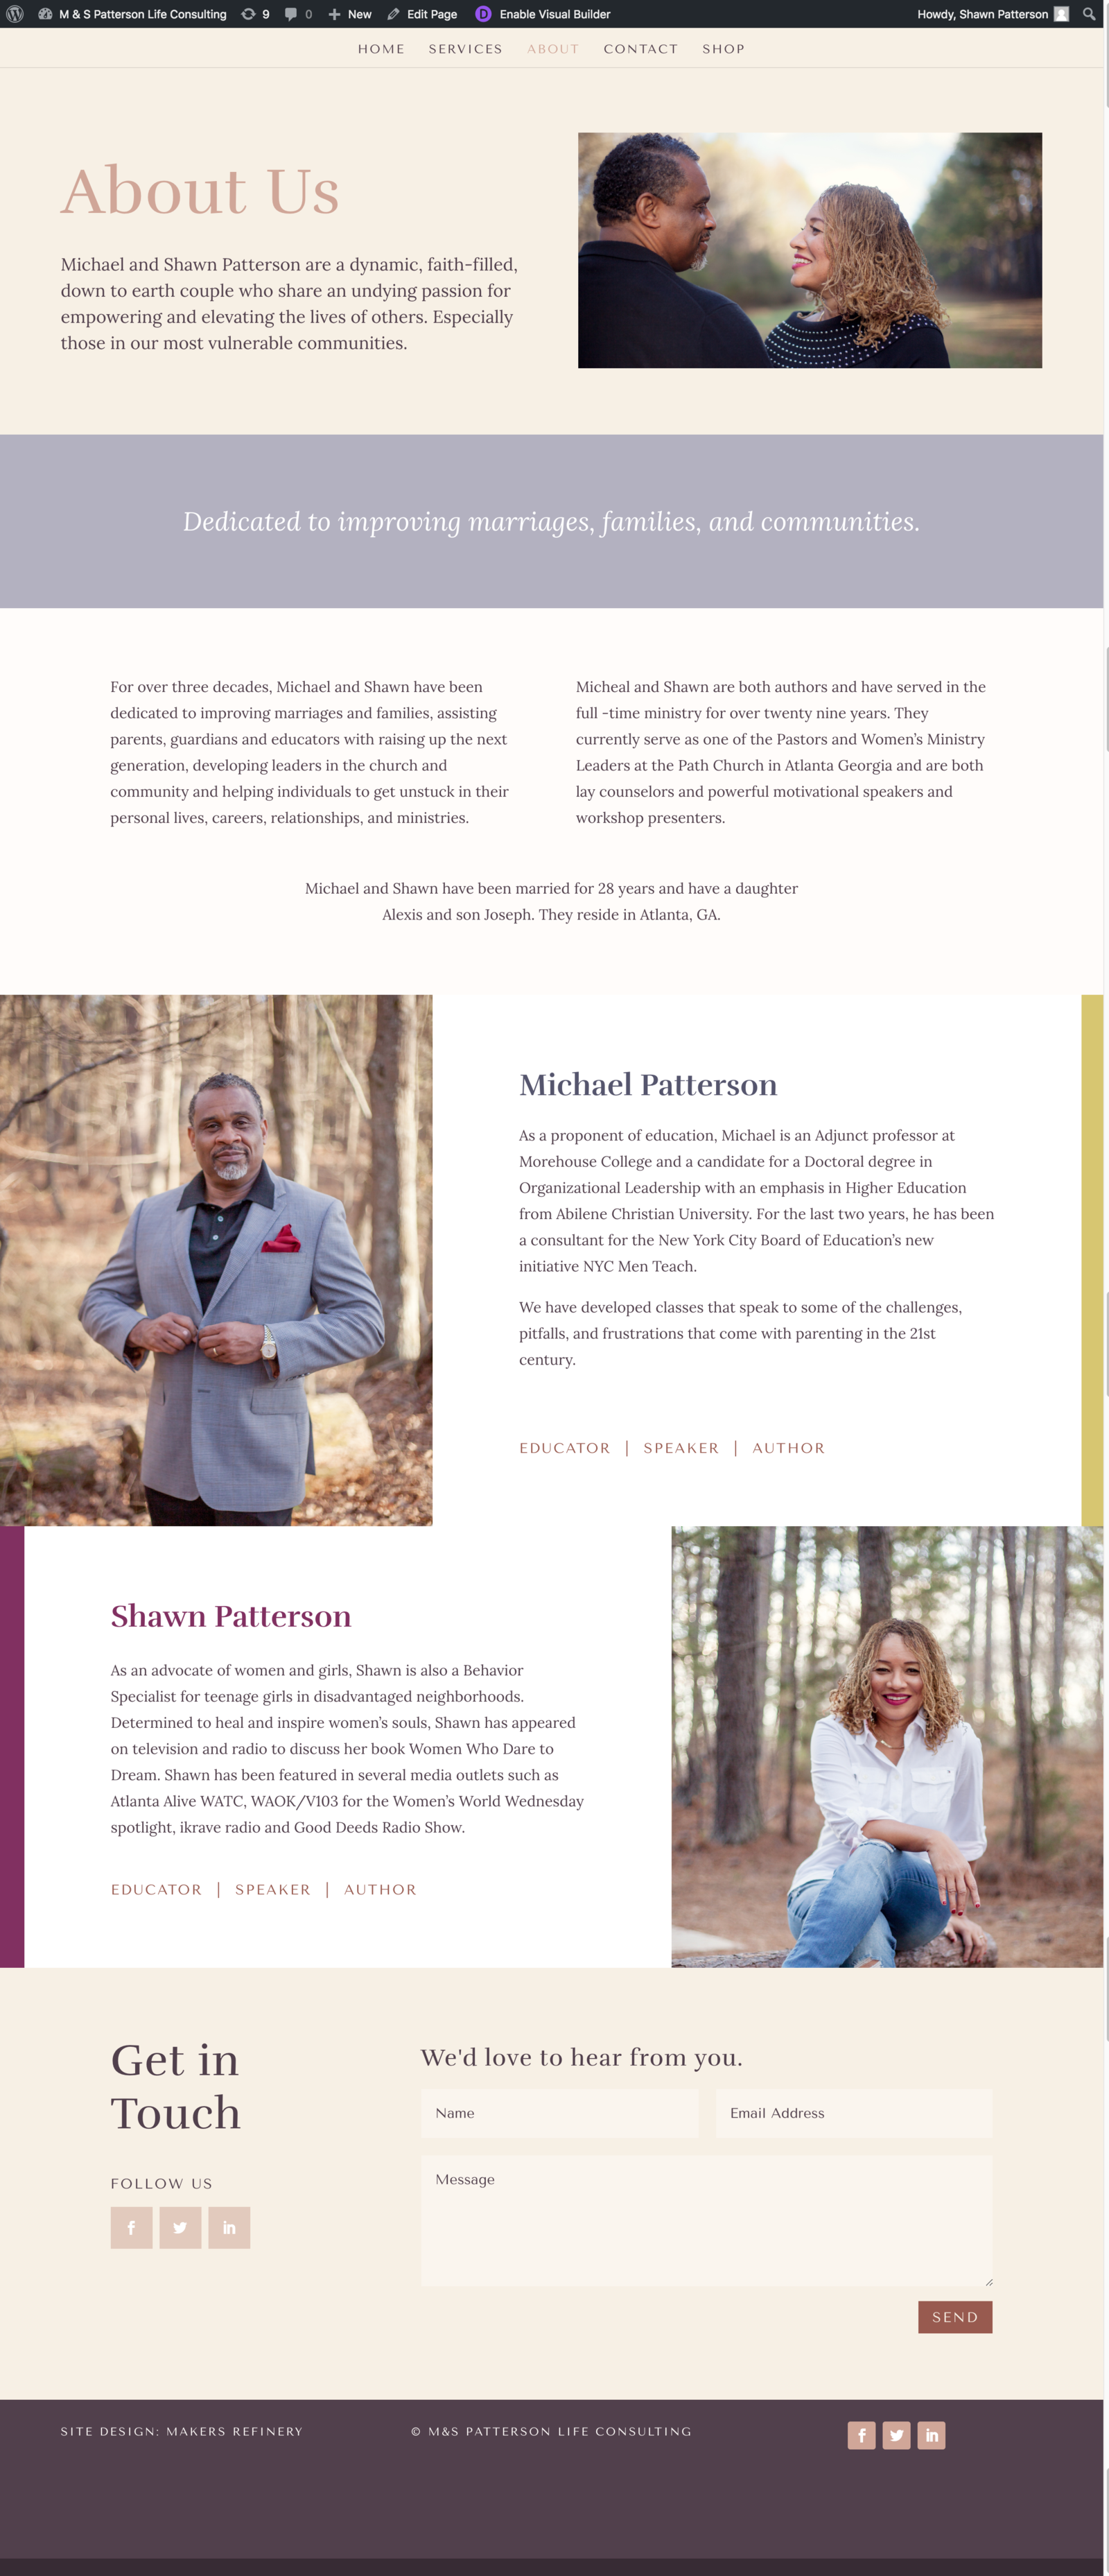 About   M   S Patterson Life Consulting (1)